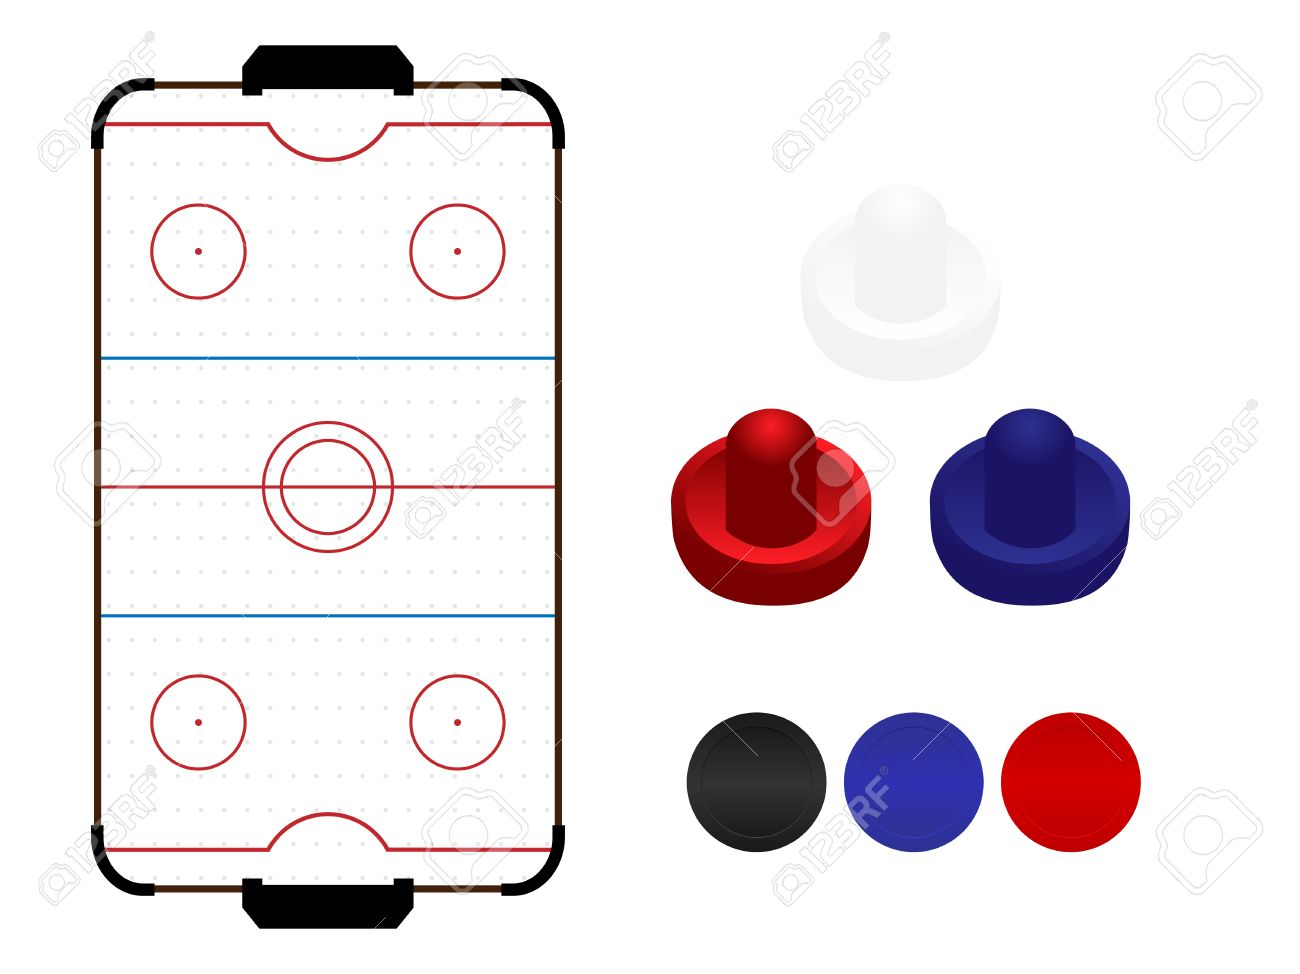 Air Hockey Table Top View Air Hockey Table With Mallets And Pucks